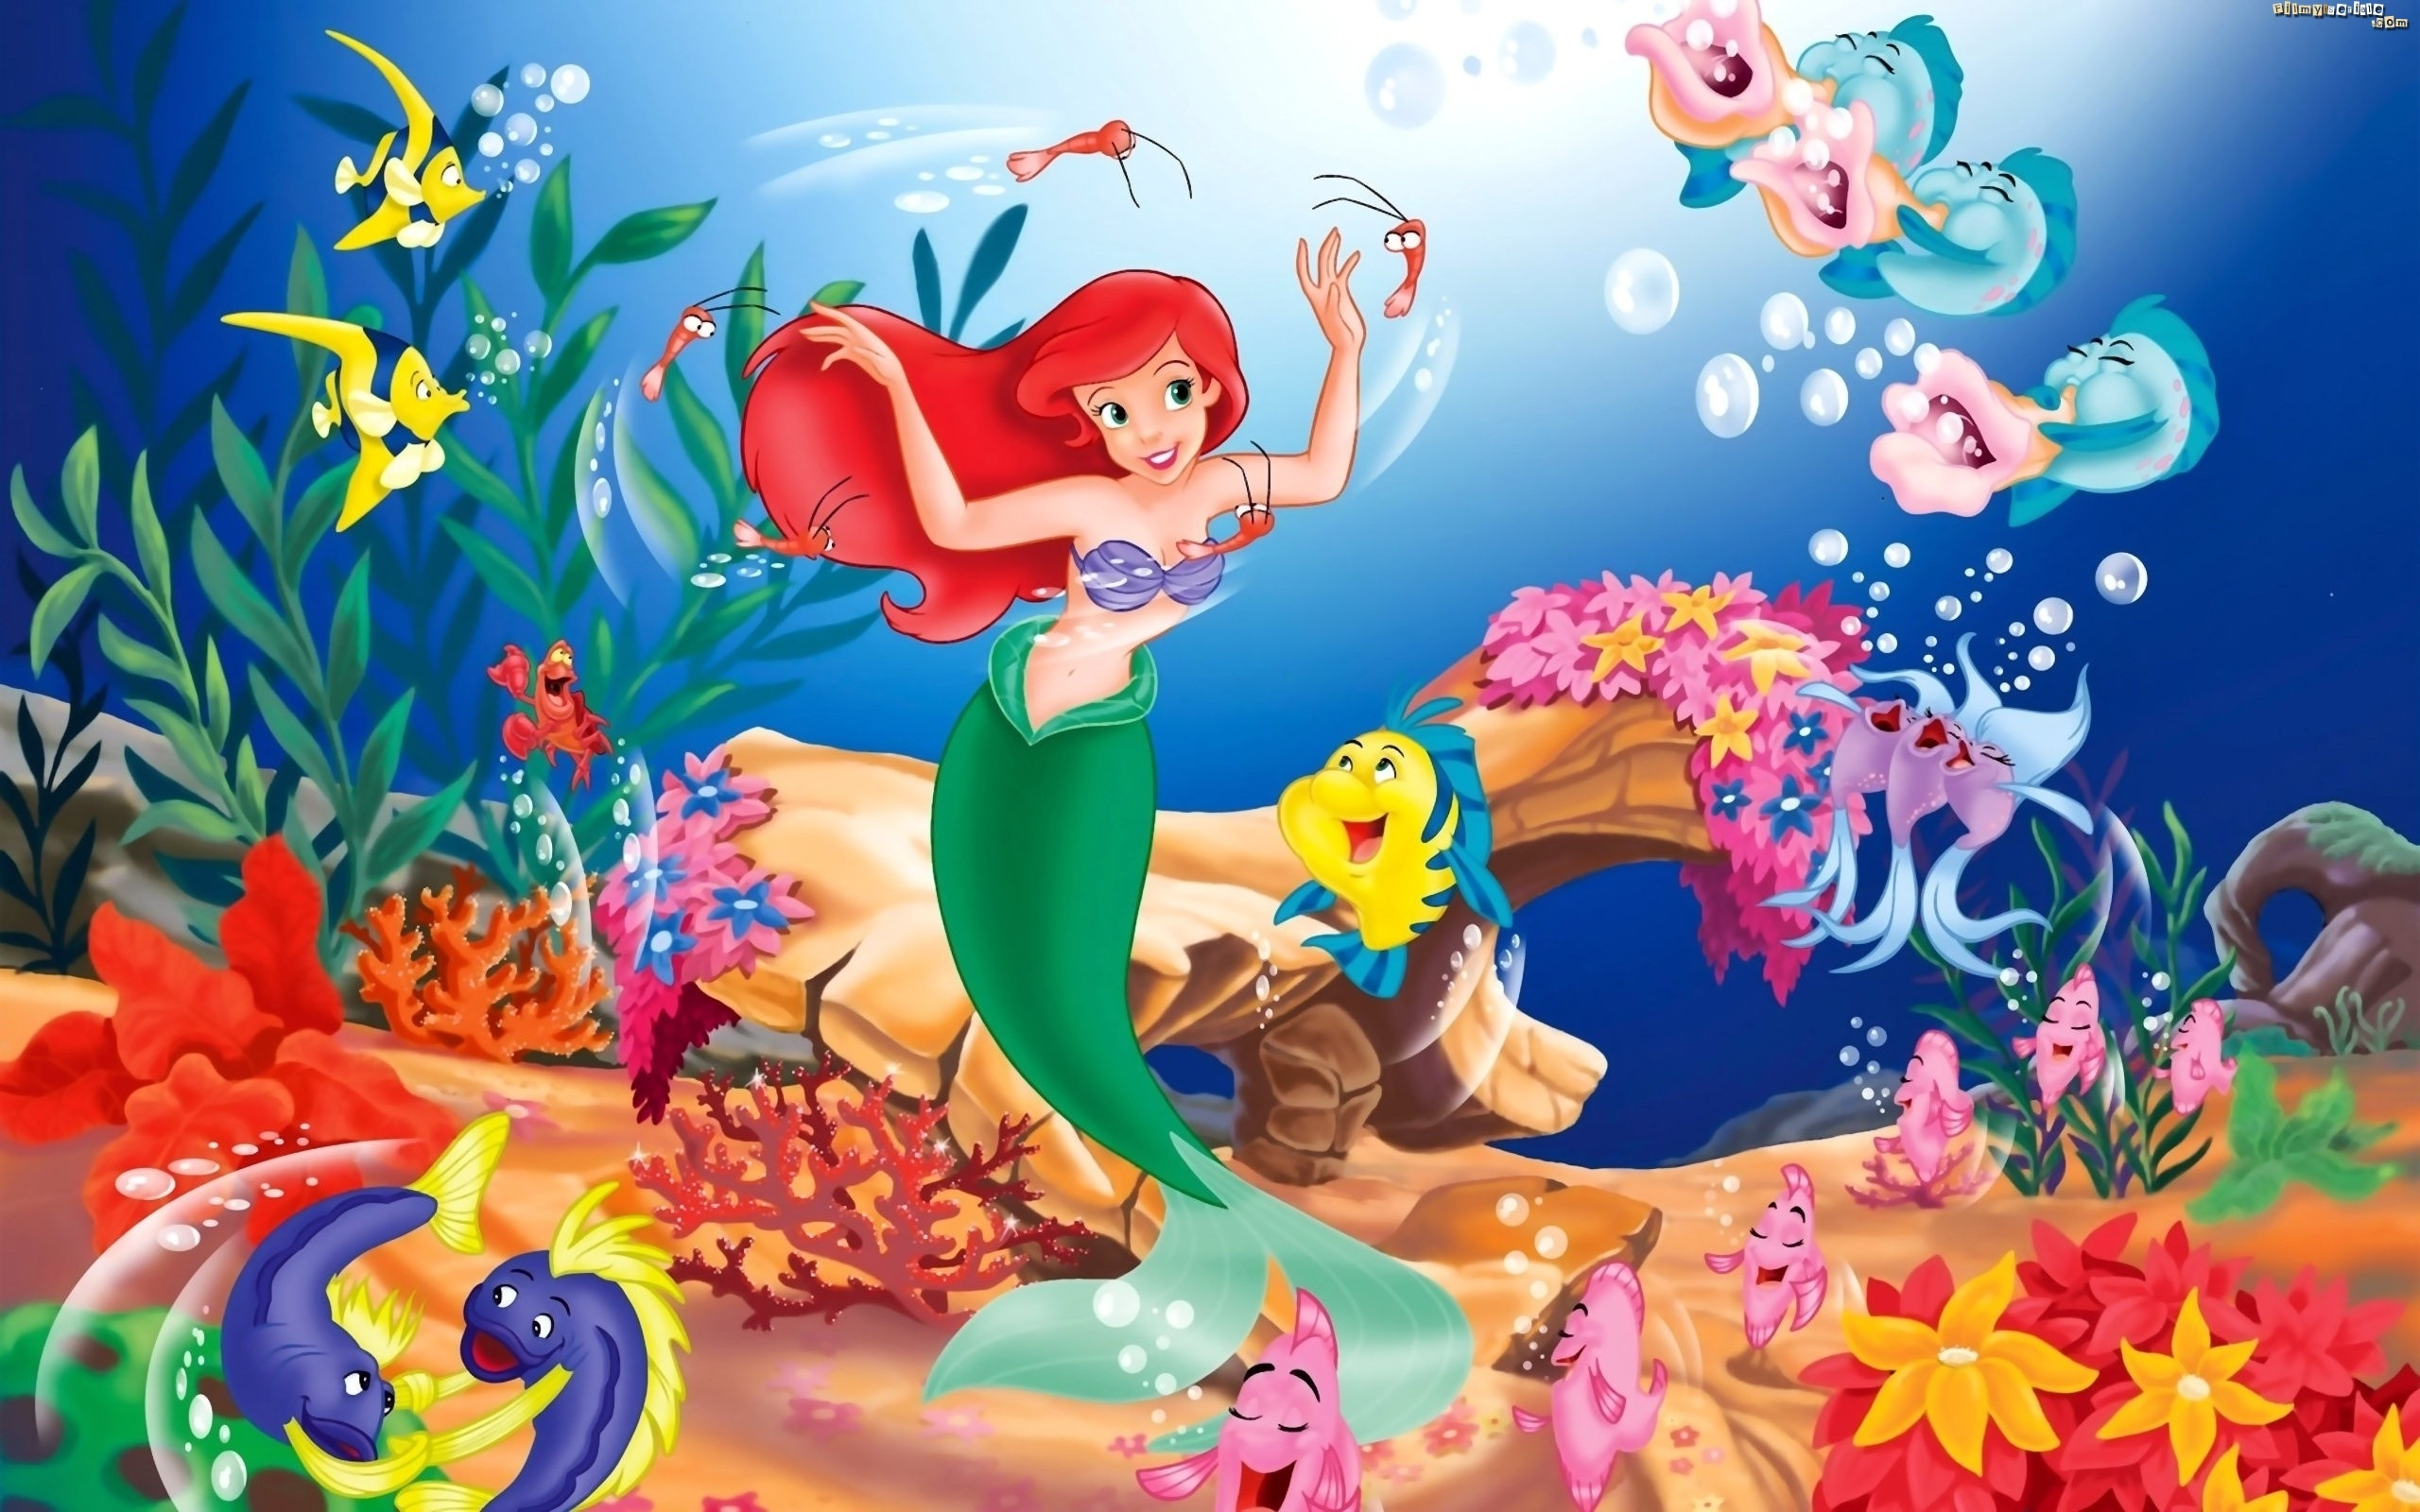 Mała Syrenka, The Little Mermaid, Ariel, Woda, Rybki